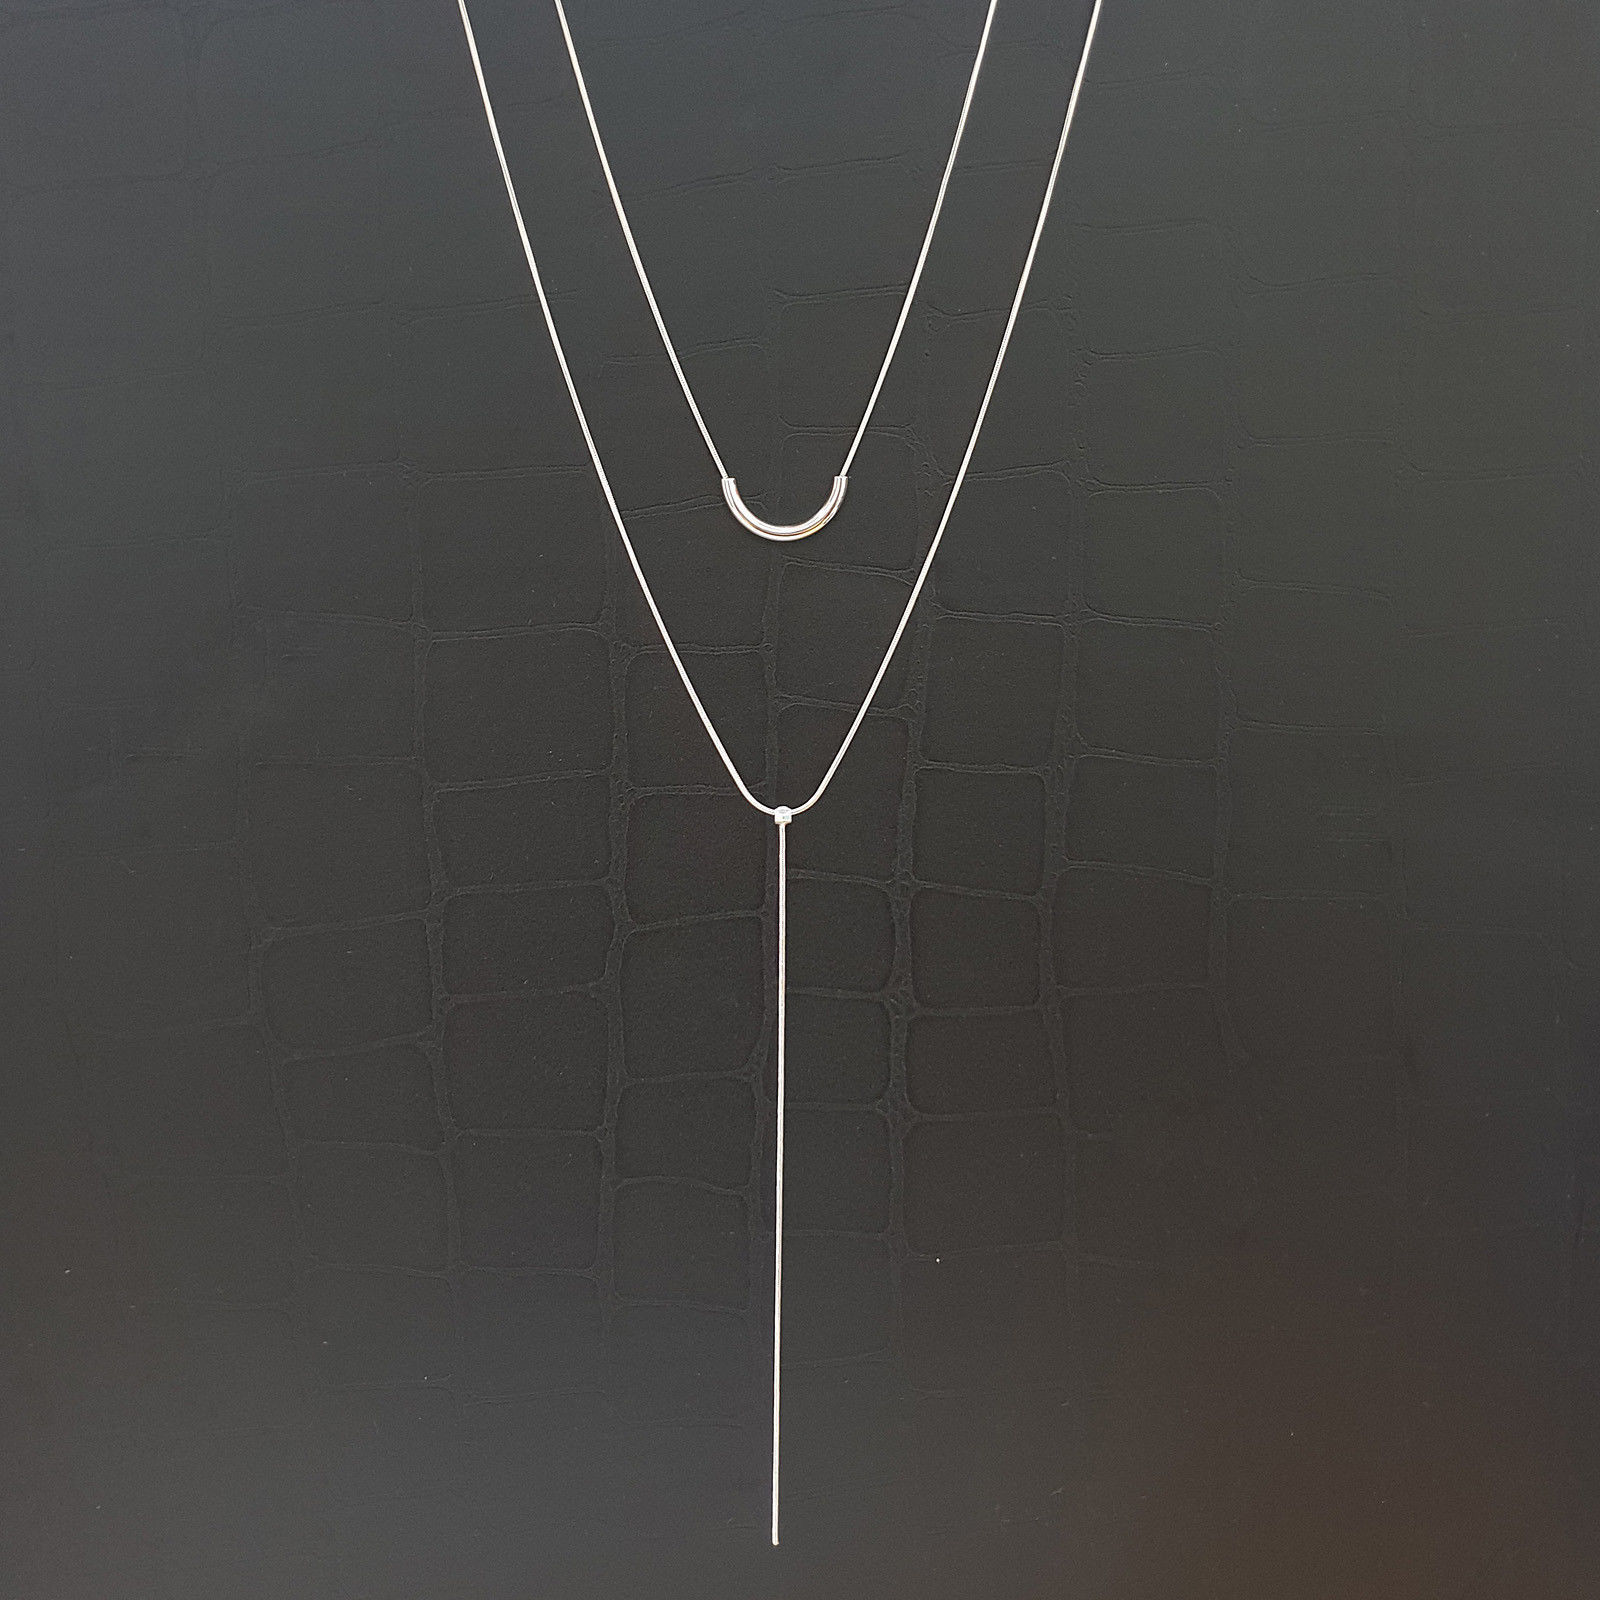 2 Layer Multi-Strand Necklaces Choker Necklace Women Fashion N14